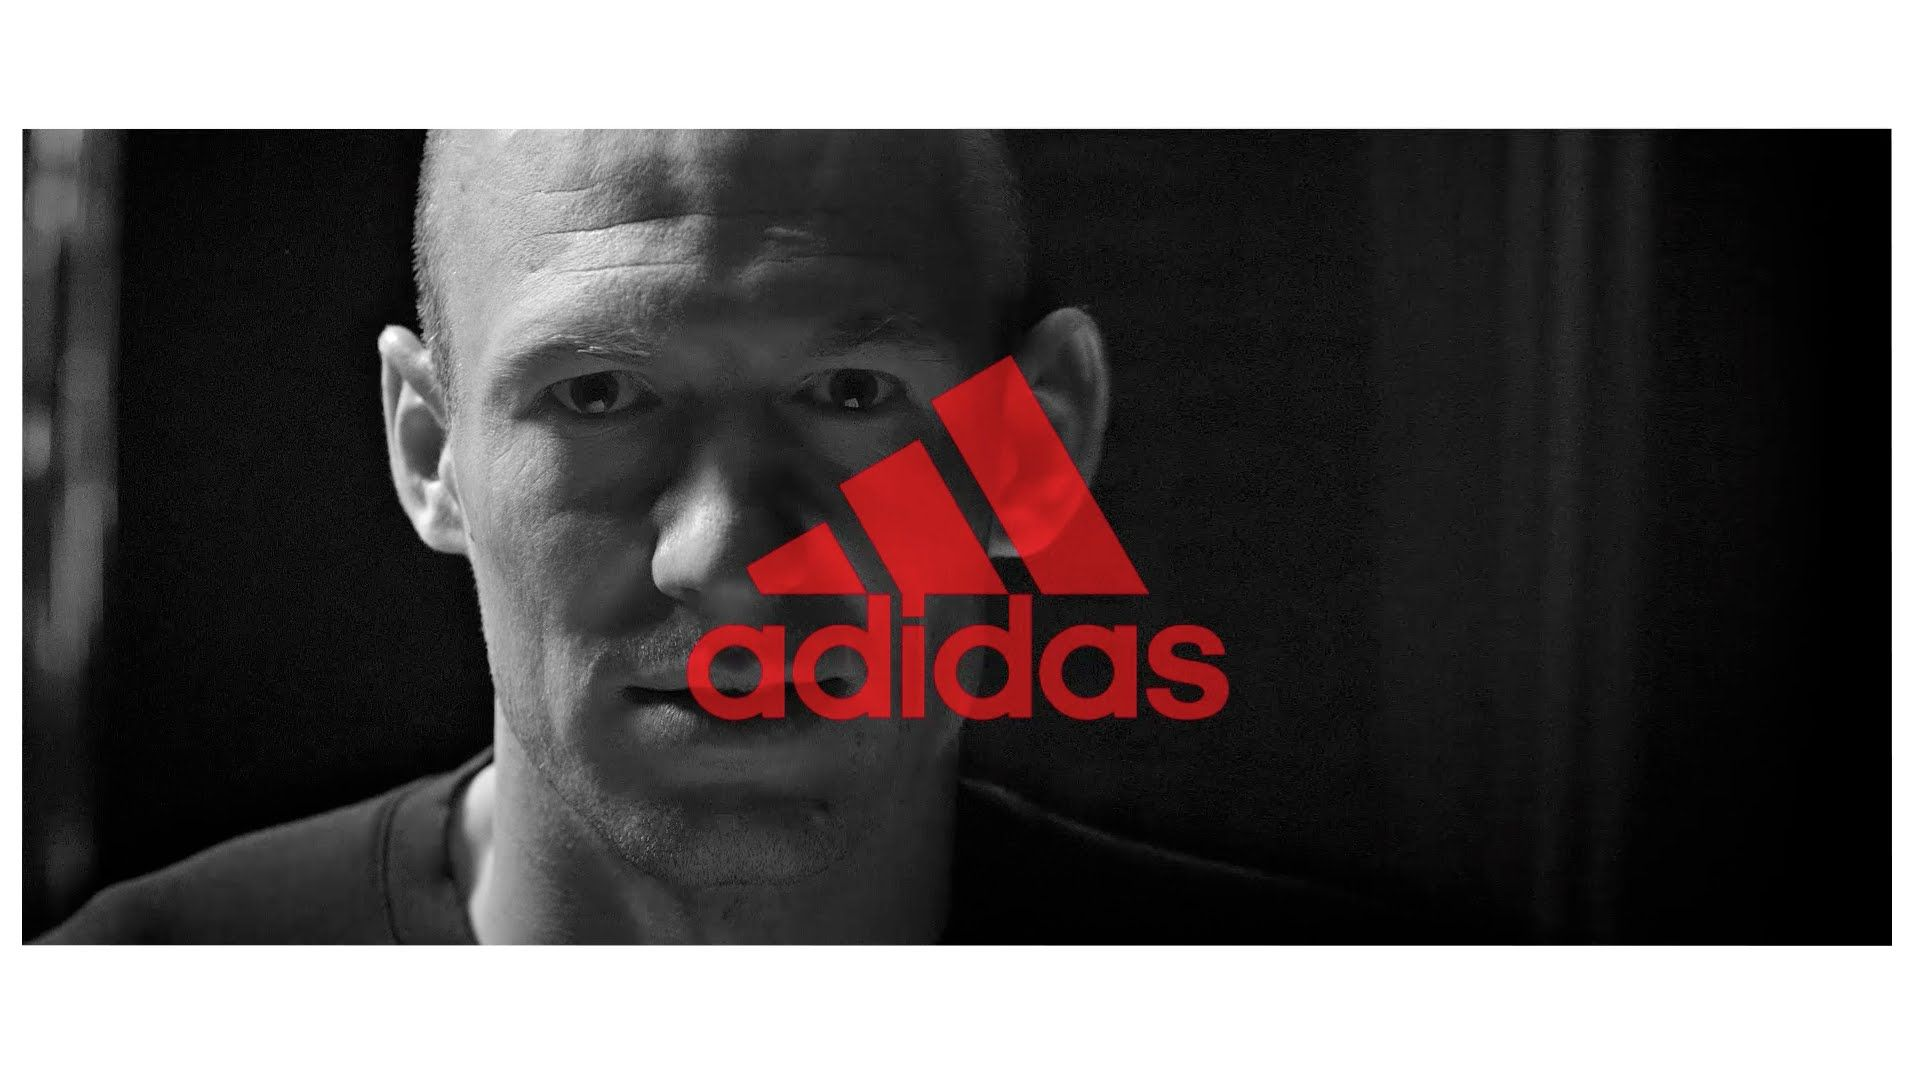 #adidas #Adidas(BusinessOperation) #arjen #ArjenRobben(FootballPlayer) #football #Football(Interest) #NetherlandsNationalFootbal... #Robben #soccer #take #takeit #taketoday #today adidas Arjen Robben: Take Today